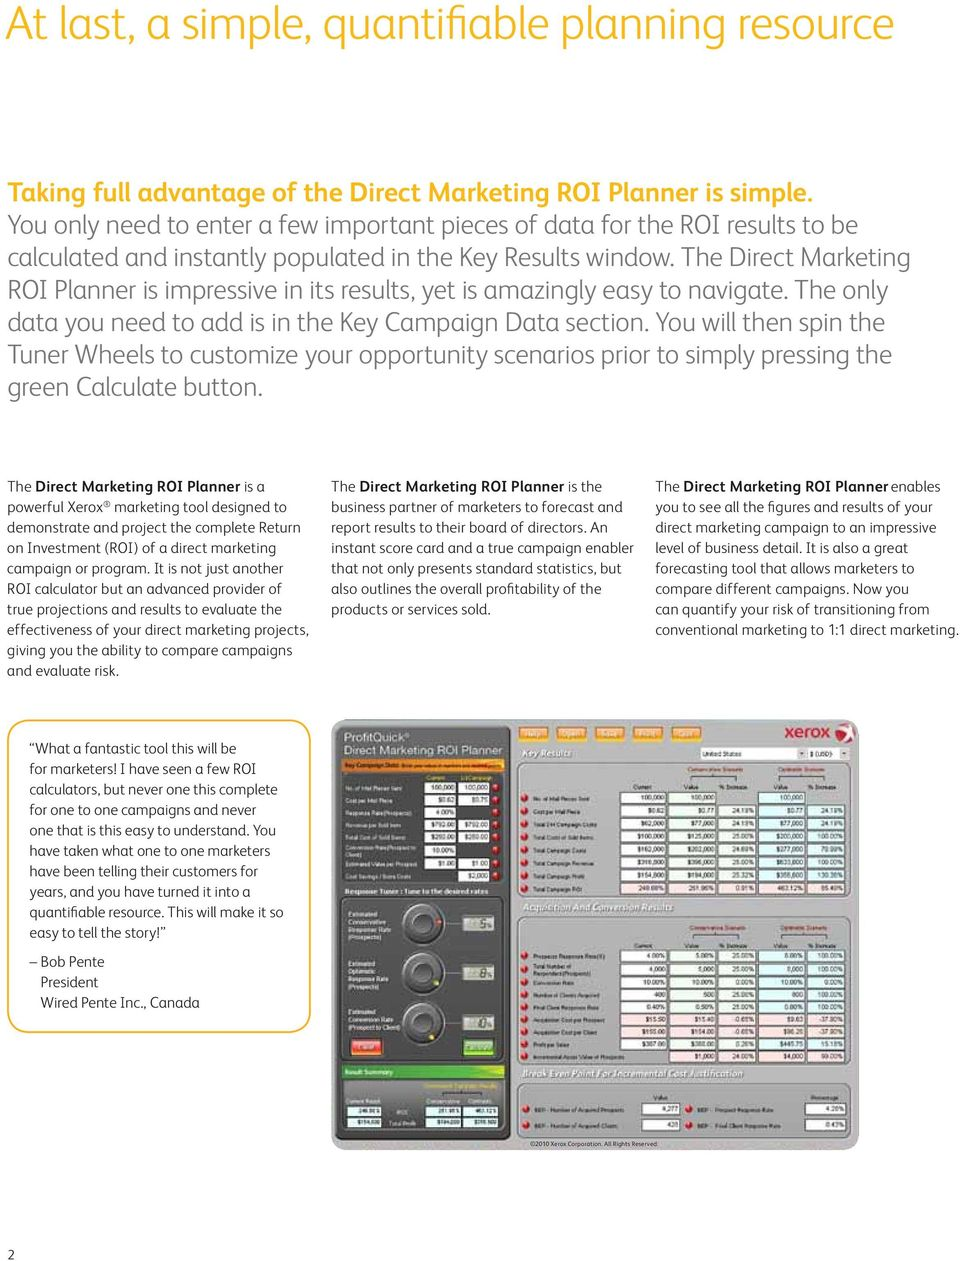 The Direct Marketing ROI Planner is impressive in its results, yet is amazingly easy to navigate. The only data you need to add is in the Key Campaign Data section.